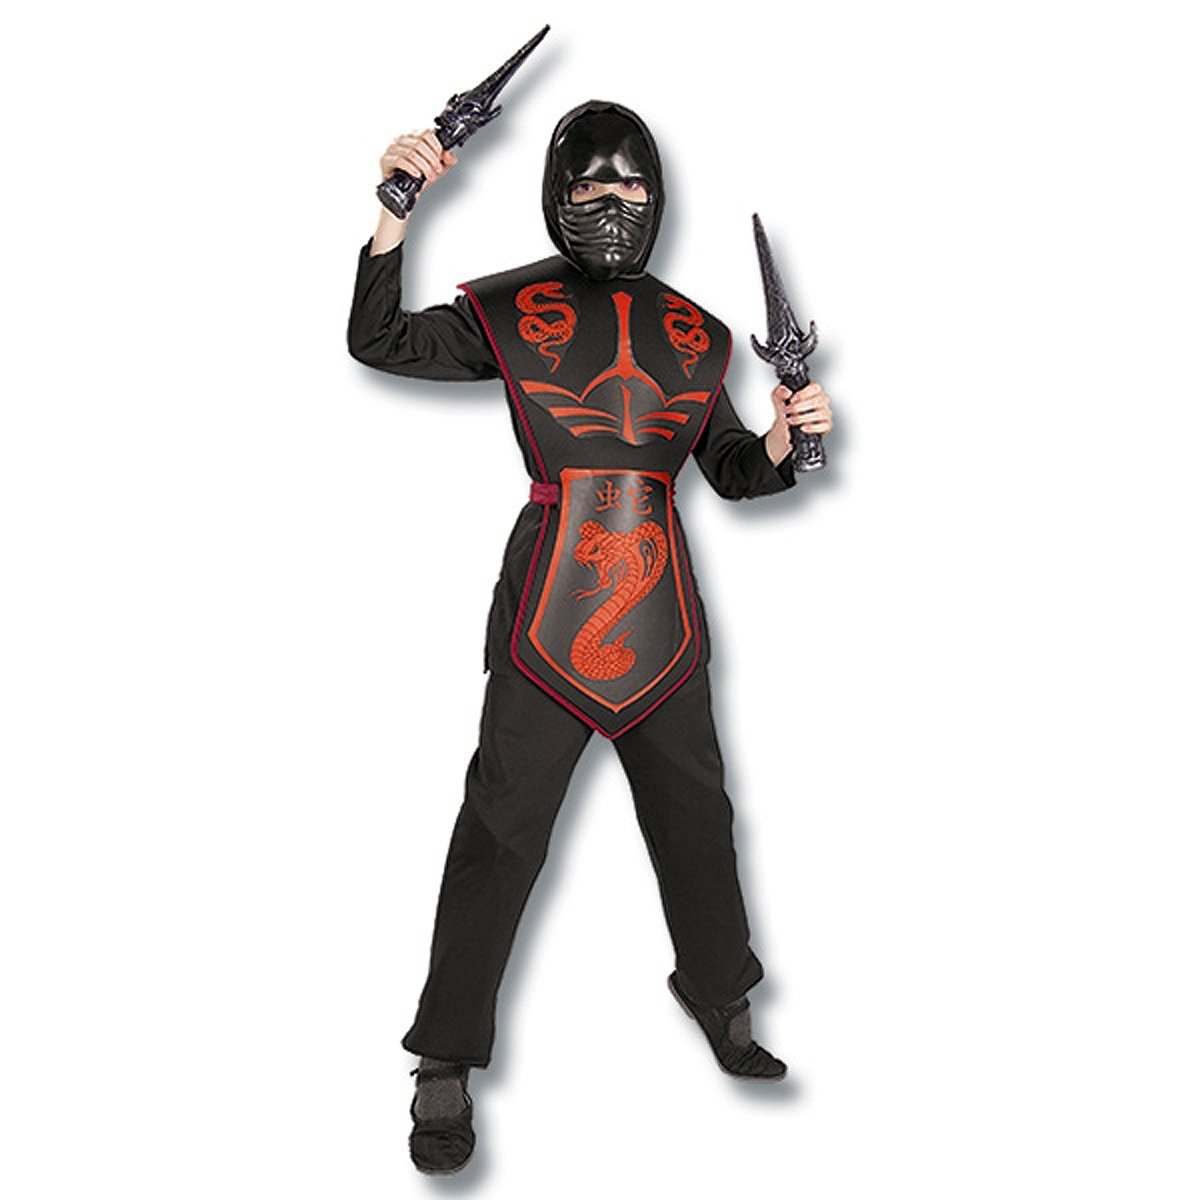 Rubies Costume Co Cobra Ninja Costume, Large, Red, One Size 882399-L